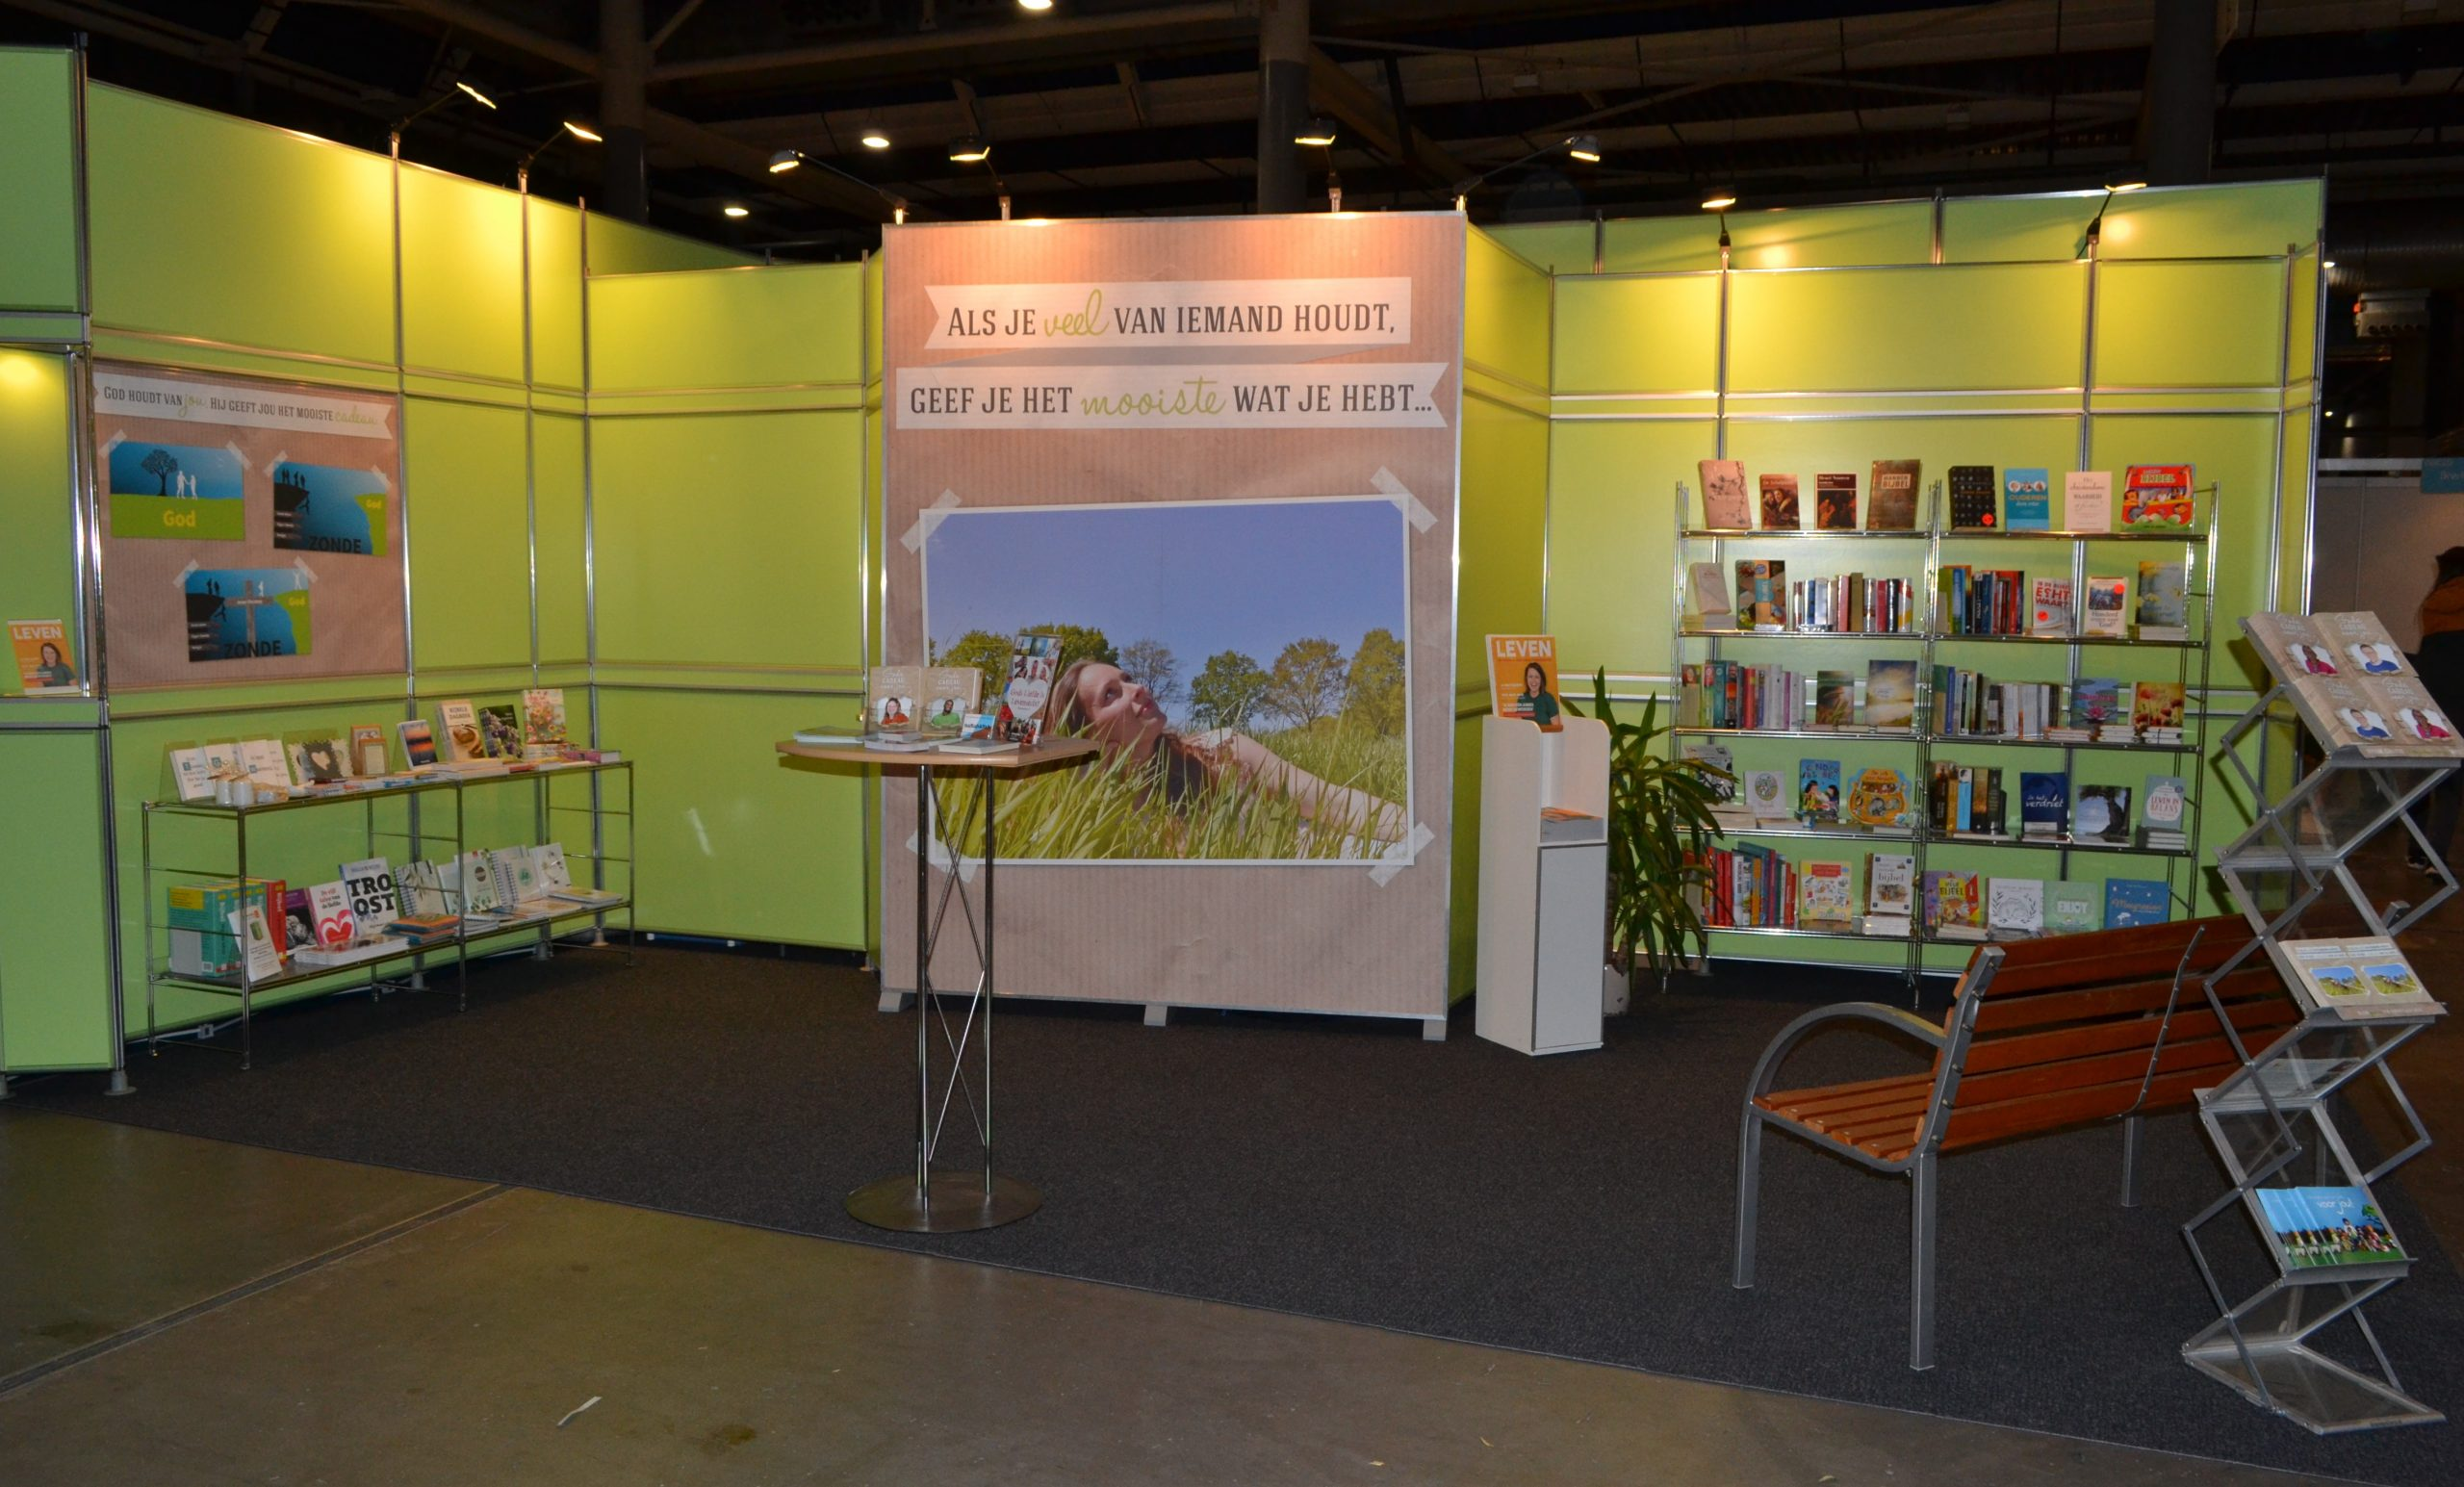 stand 50 plus 2019 scaled - Bijbelstand.nl